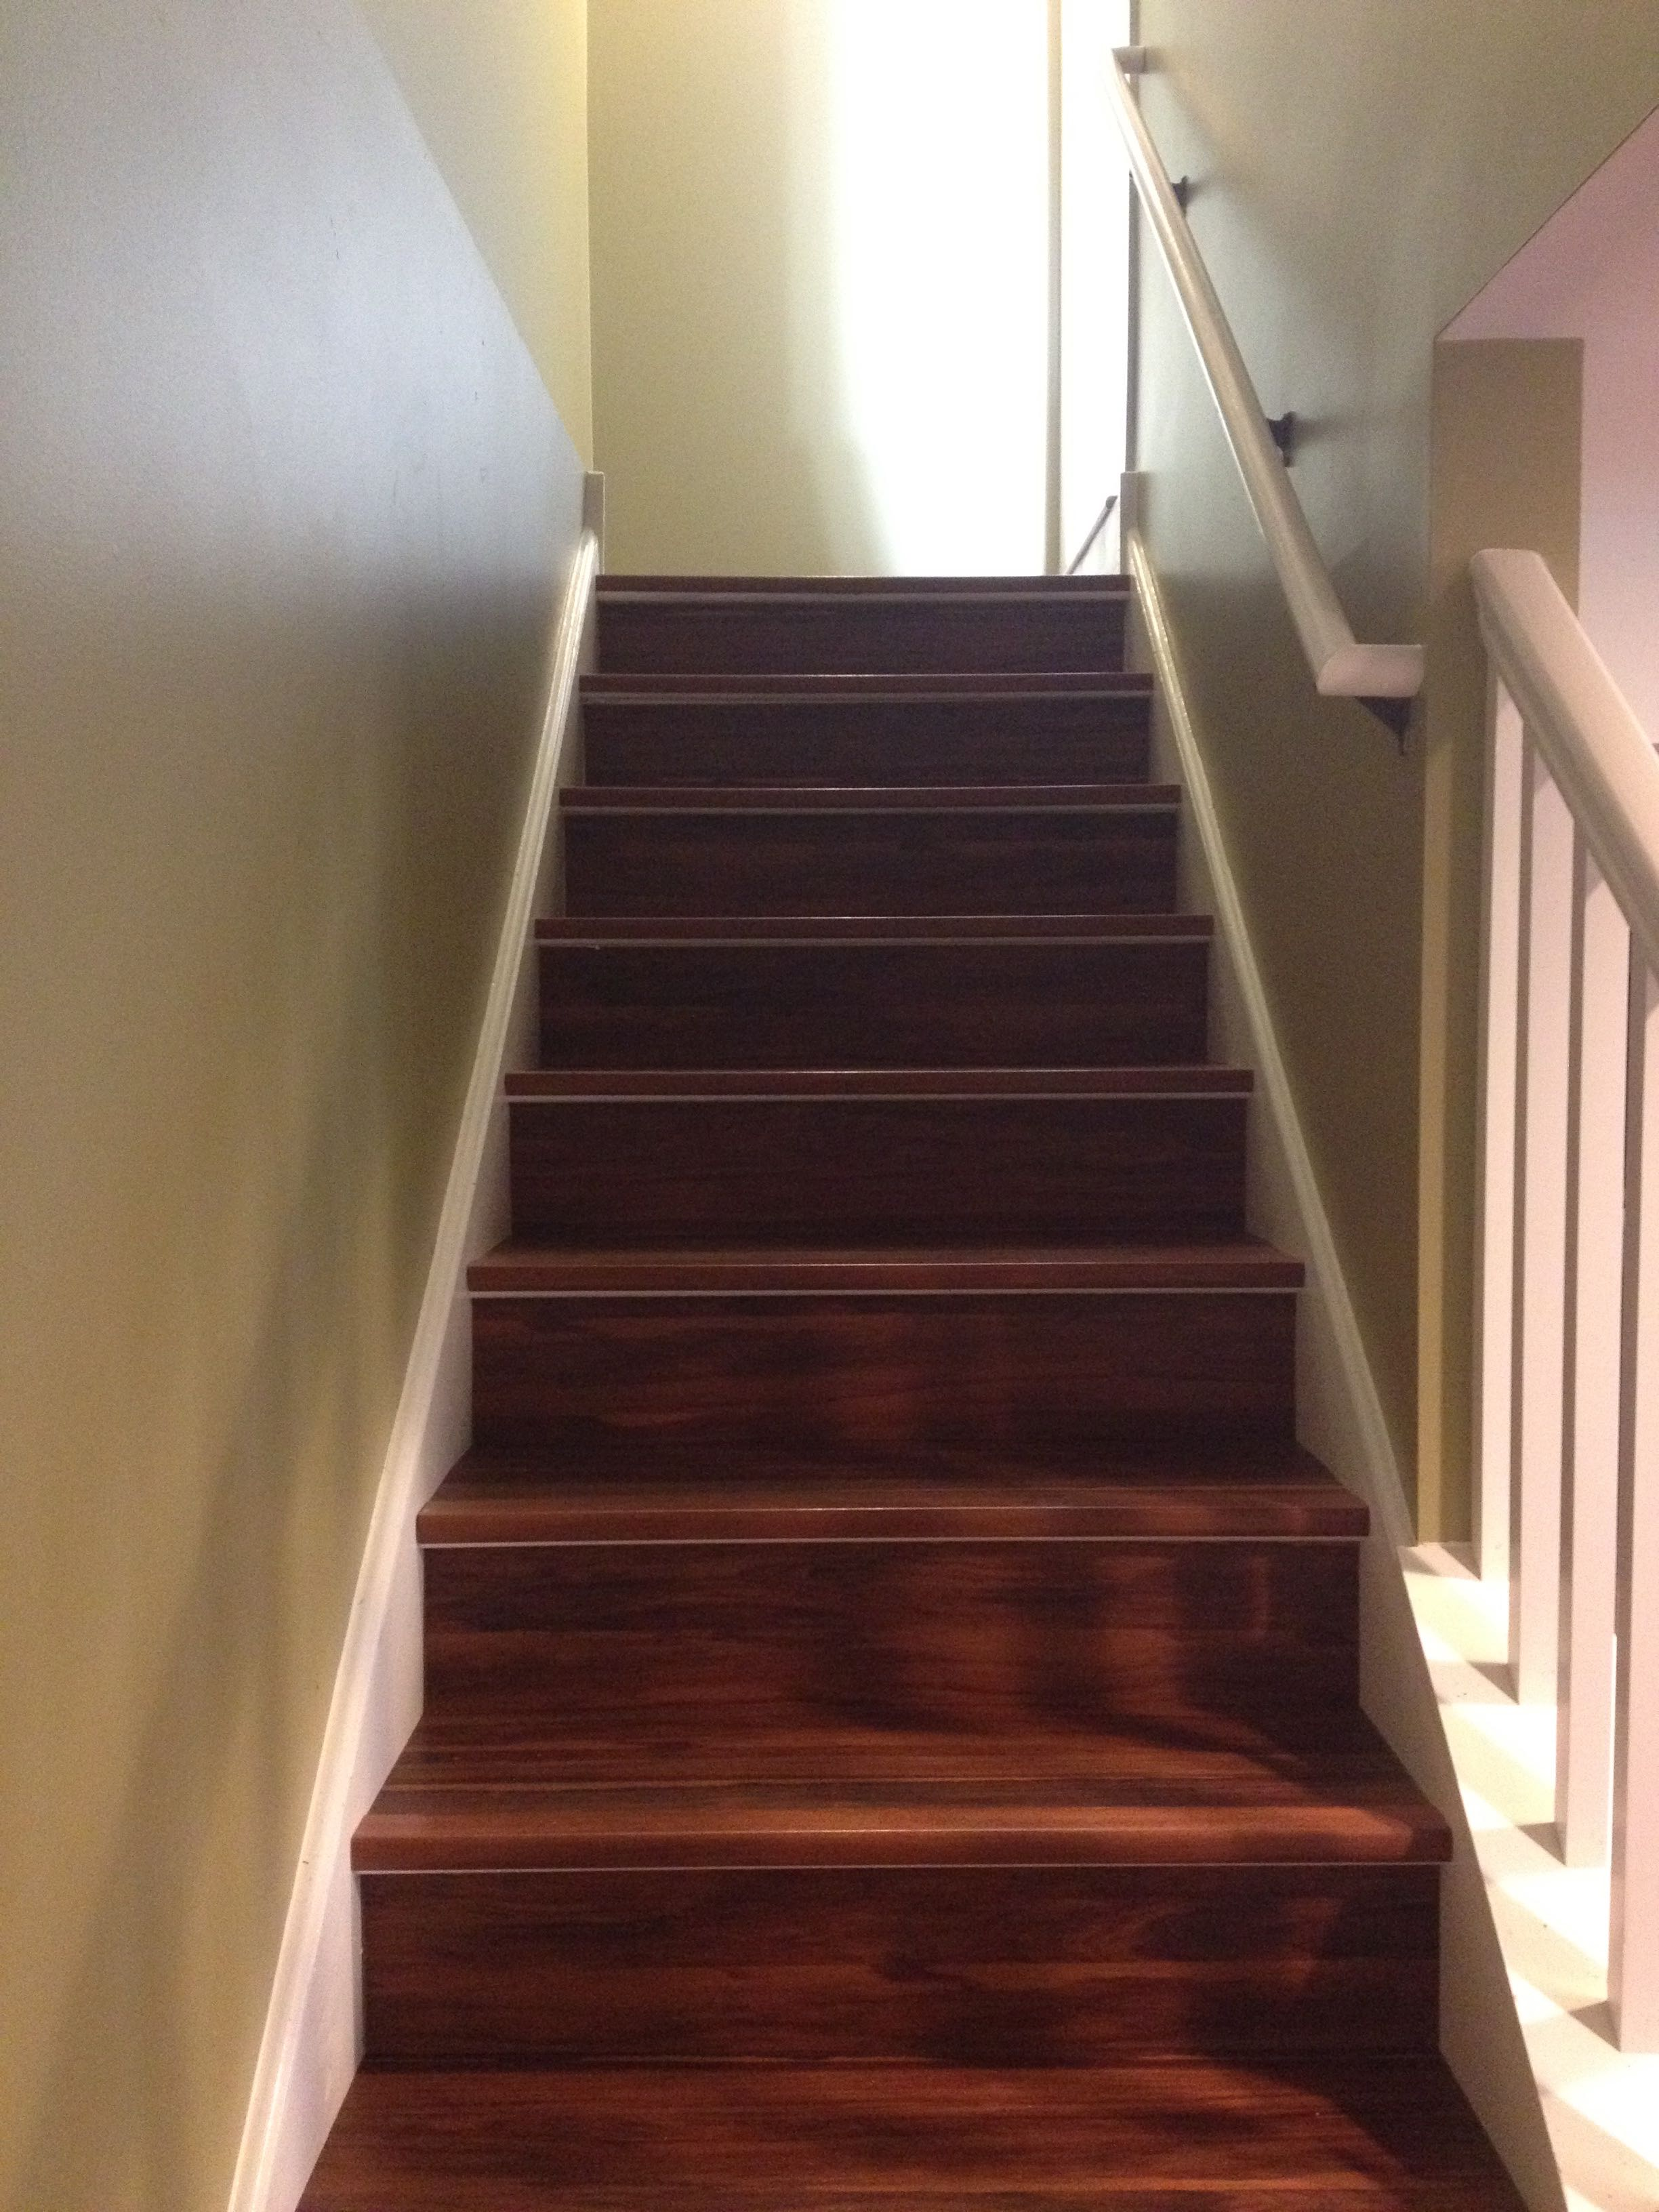 6 Ideas For Finishing Your Basement Stairs November 2018